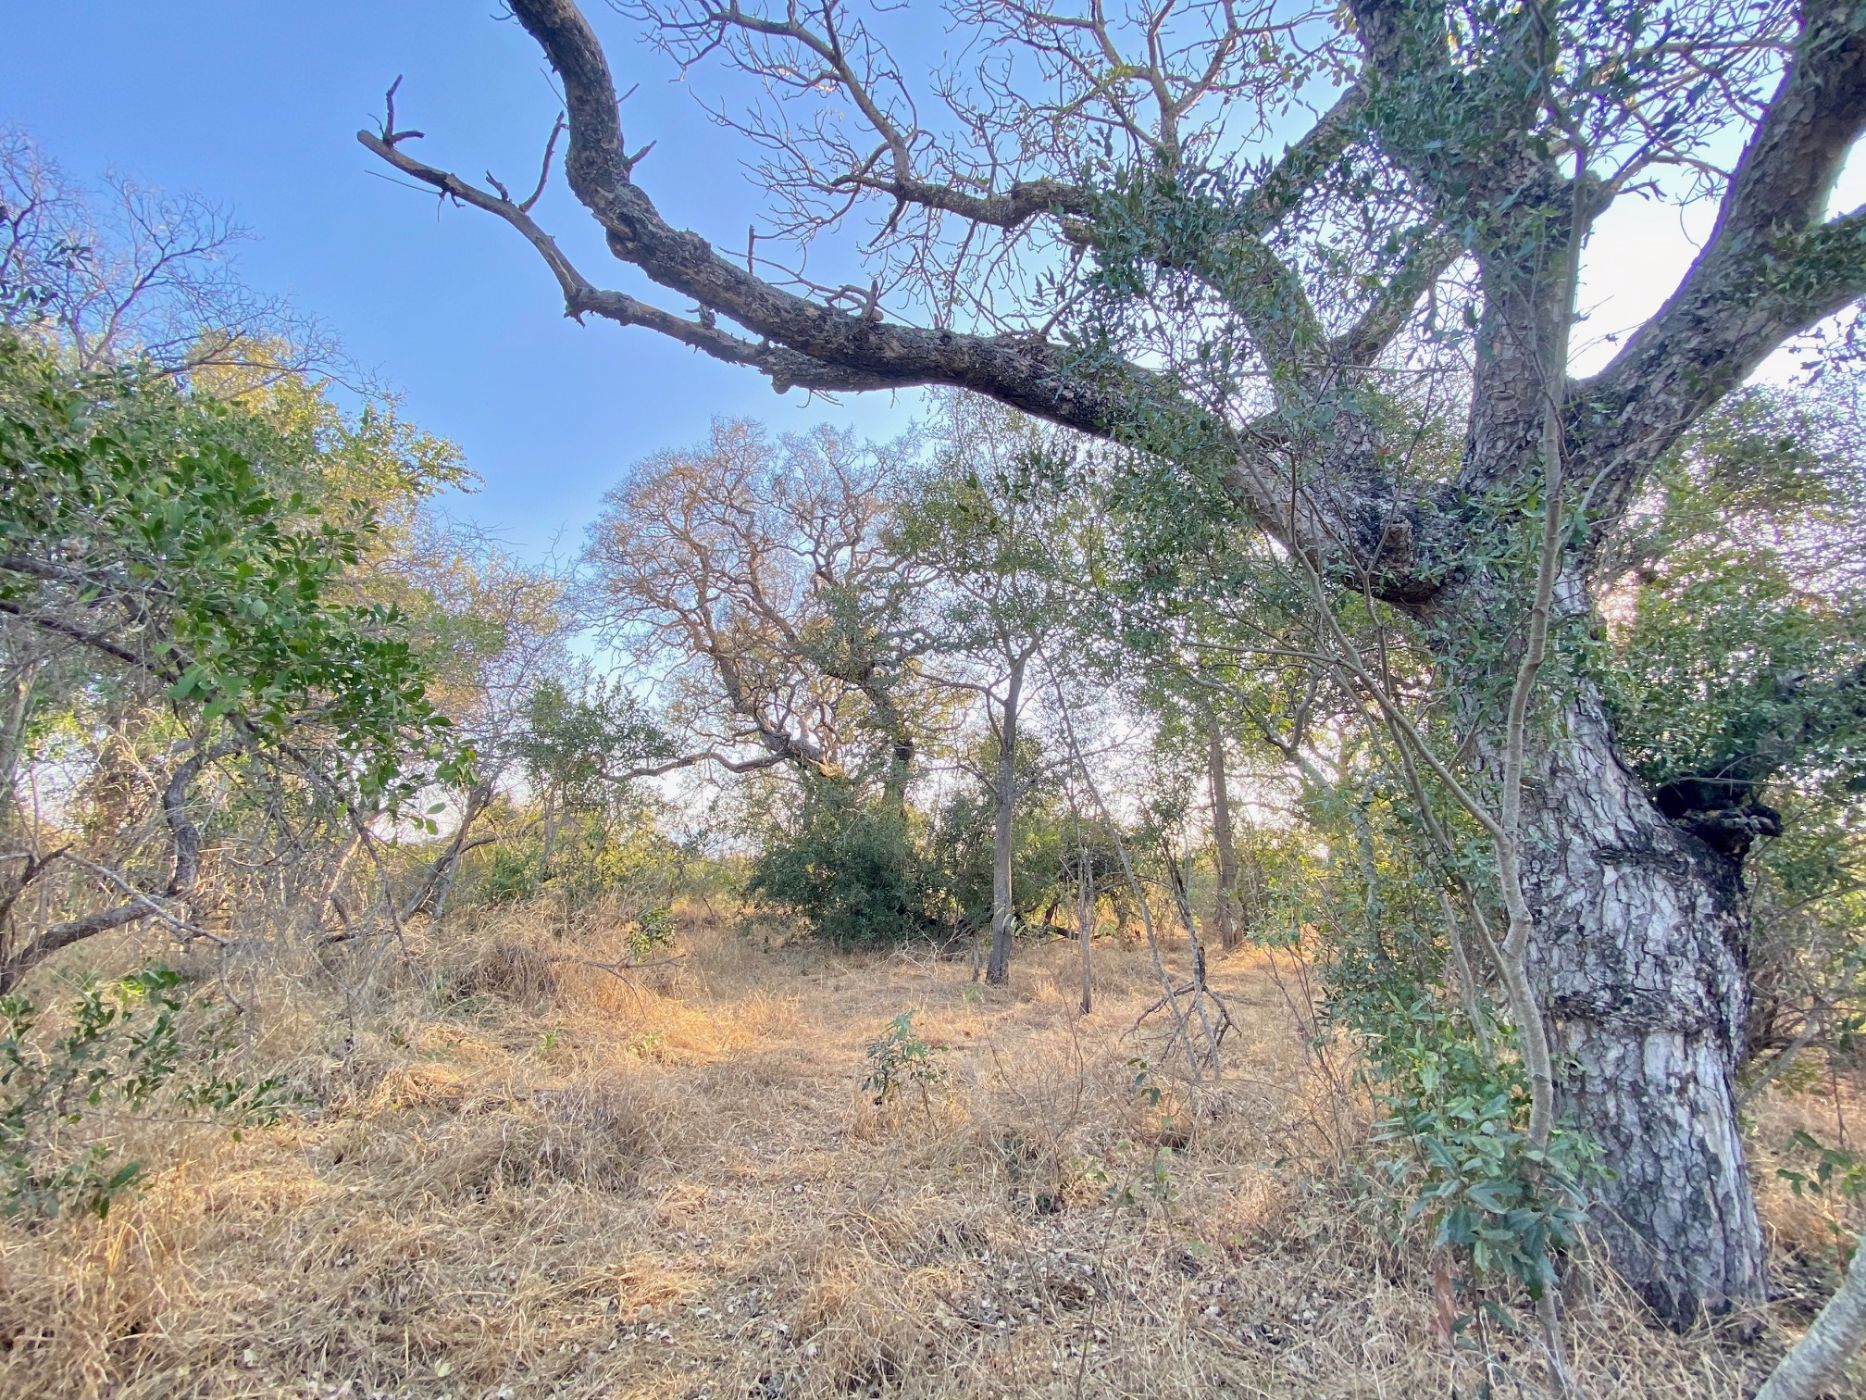 8114 m² vacant land for sale in Moditlo Nature Reserve